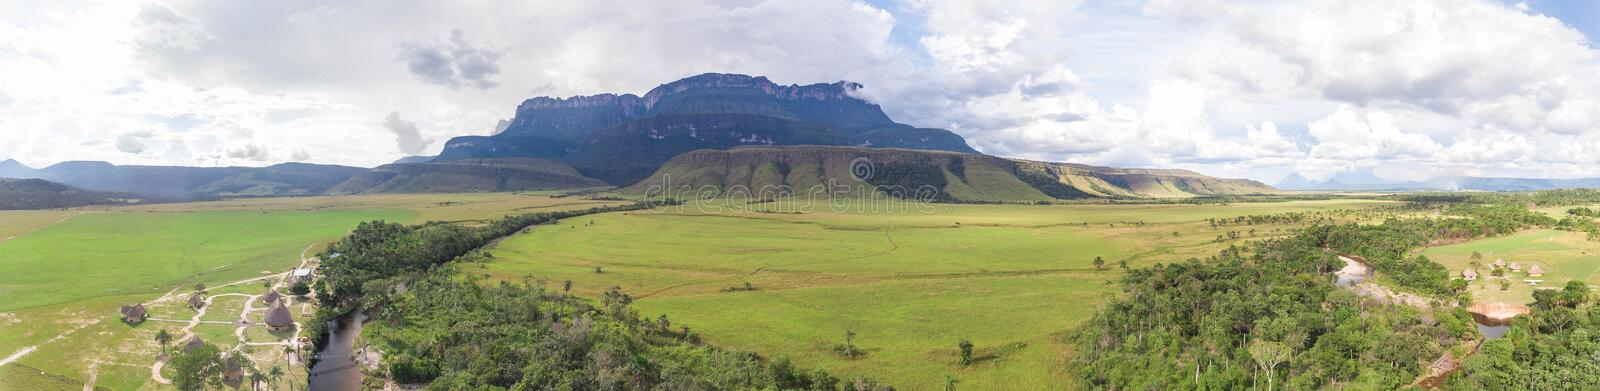 Panoramic View of Auyantepui Mountain, Venezuela stock image